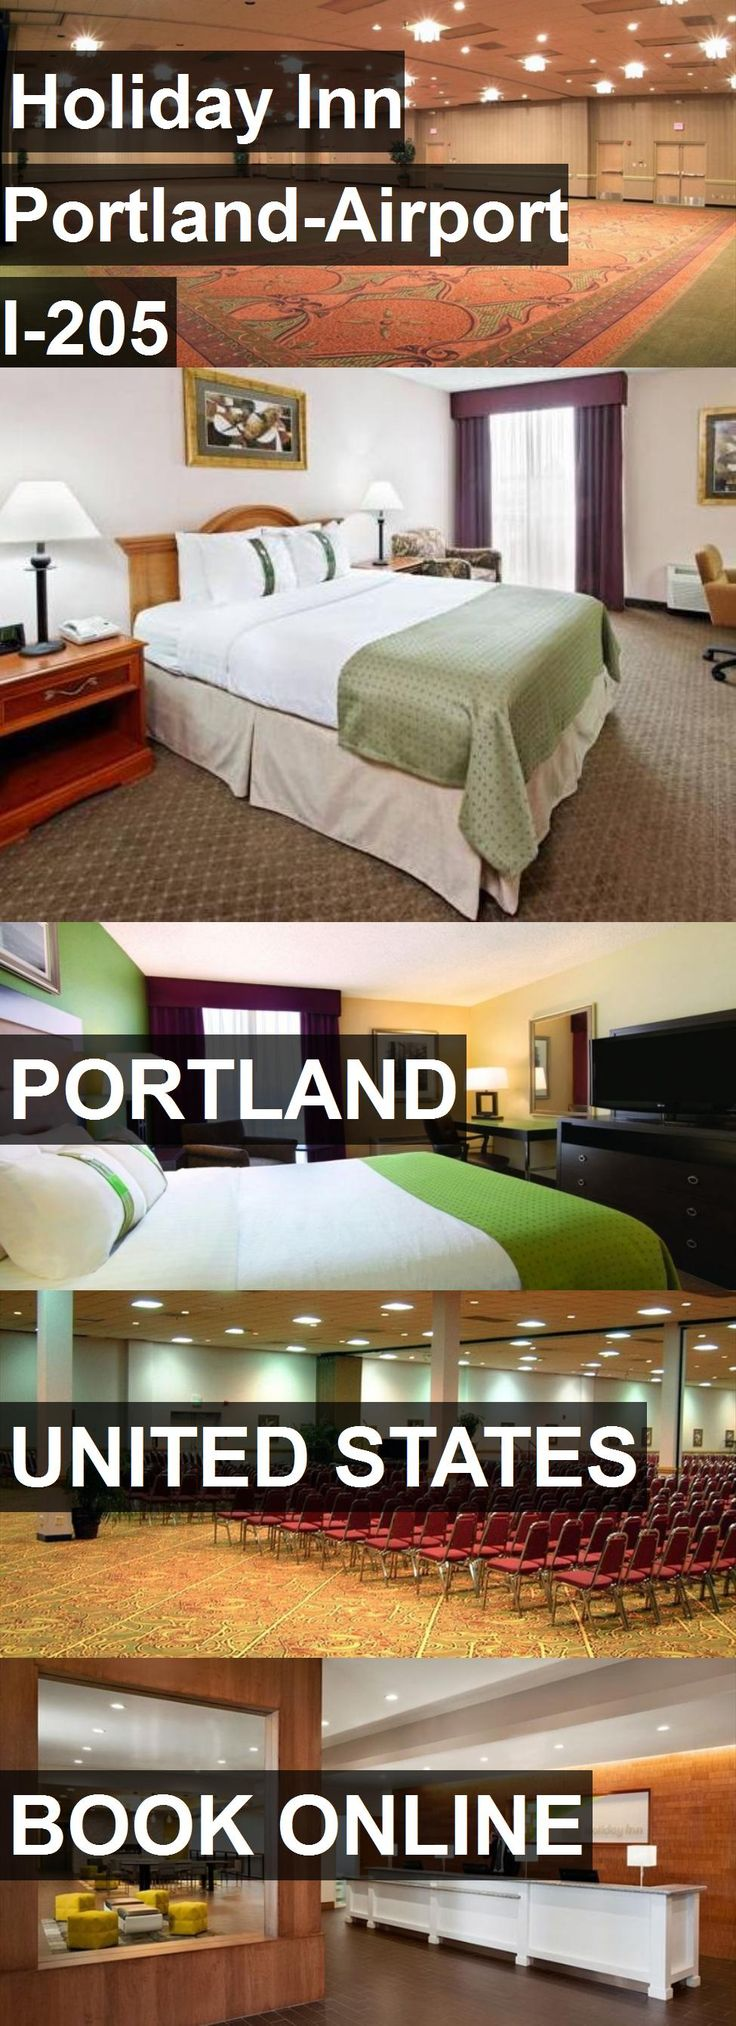 Hotel Holiday Inn Portland-Airport I-205 in Portland, United States. For more information, photos, reviews and best prices please follow the link. #UnitedStates #Portland #HolidayInnPortland-AirportI-205 #hotel #travel #vacation